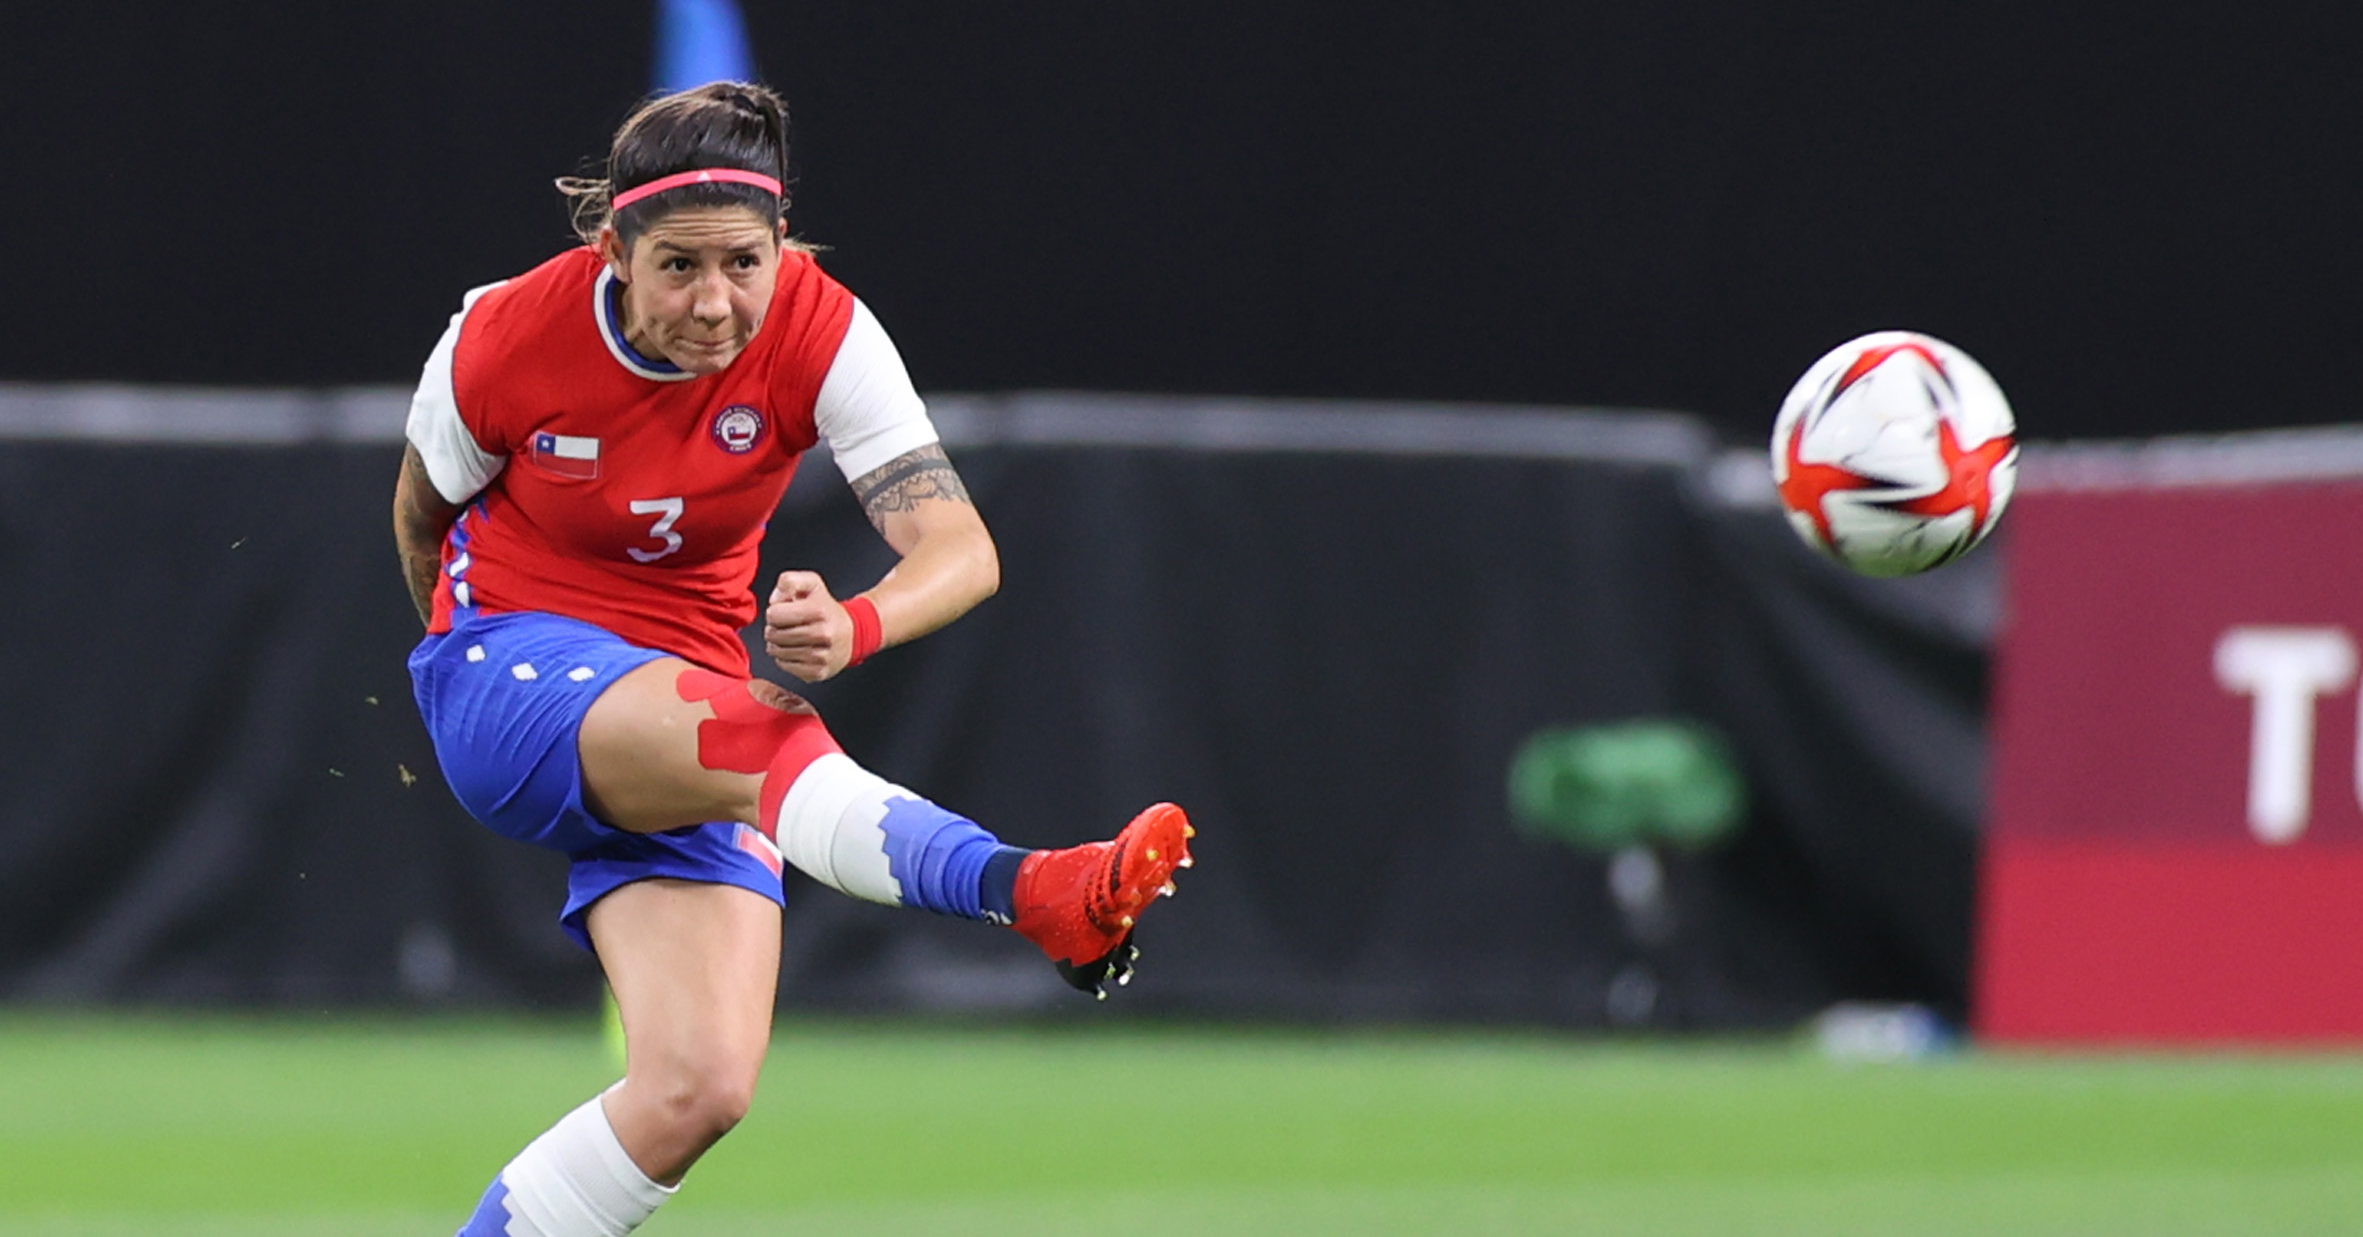 SAPPORO, JAPAN - JULY 24: Carla Guerrero #3 of Team Chile passes the ball during the Women's First Round Group E match between Chile and Canada on day one of the Tokyo 2020 Olympic Games at Sapporo Dome on July 24, 2021 in Sapporo, Hokkaido, Japan. (Photo by Masashi Hara/Getty Images)